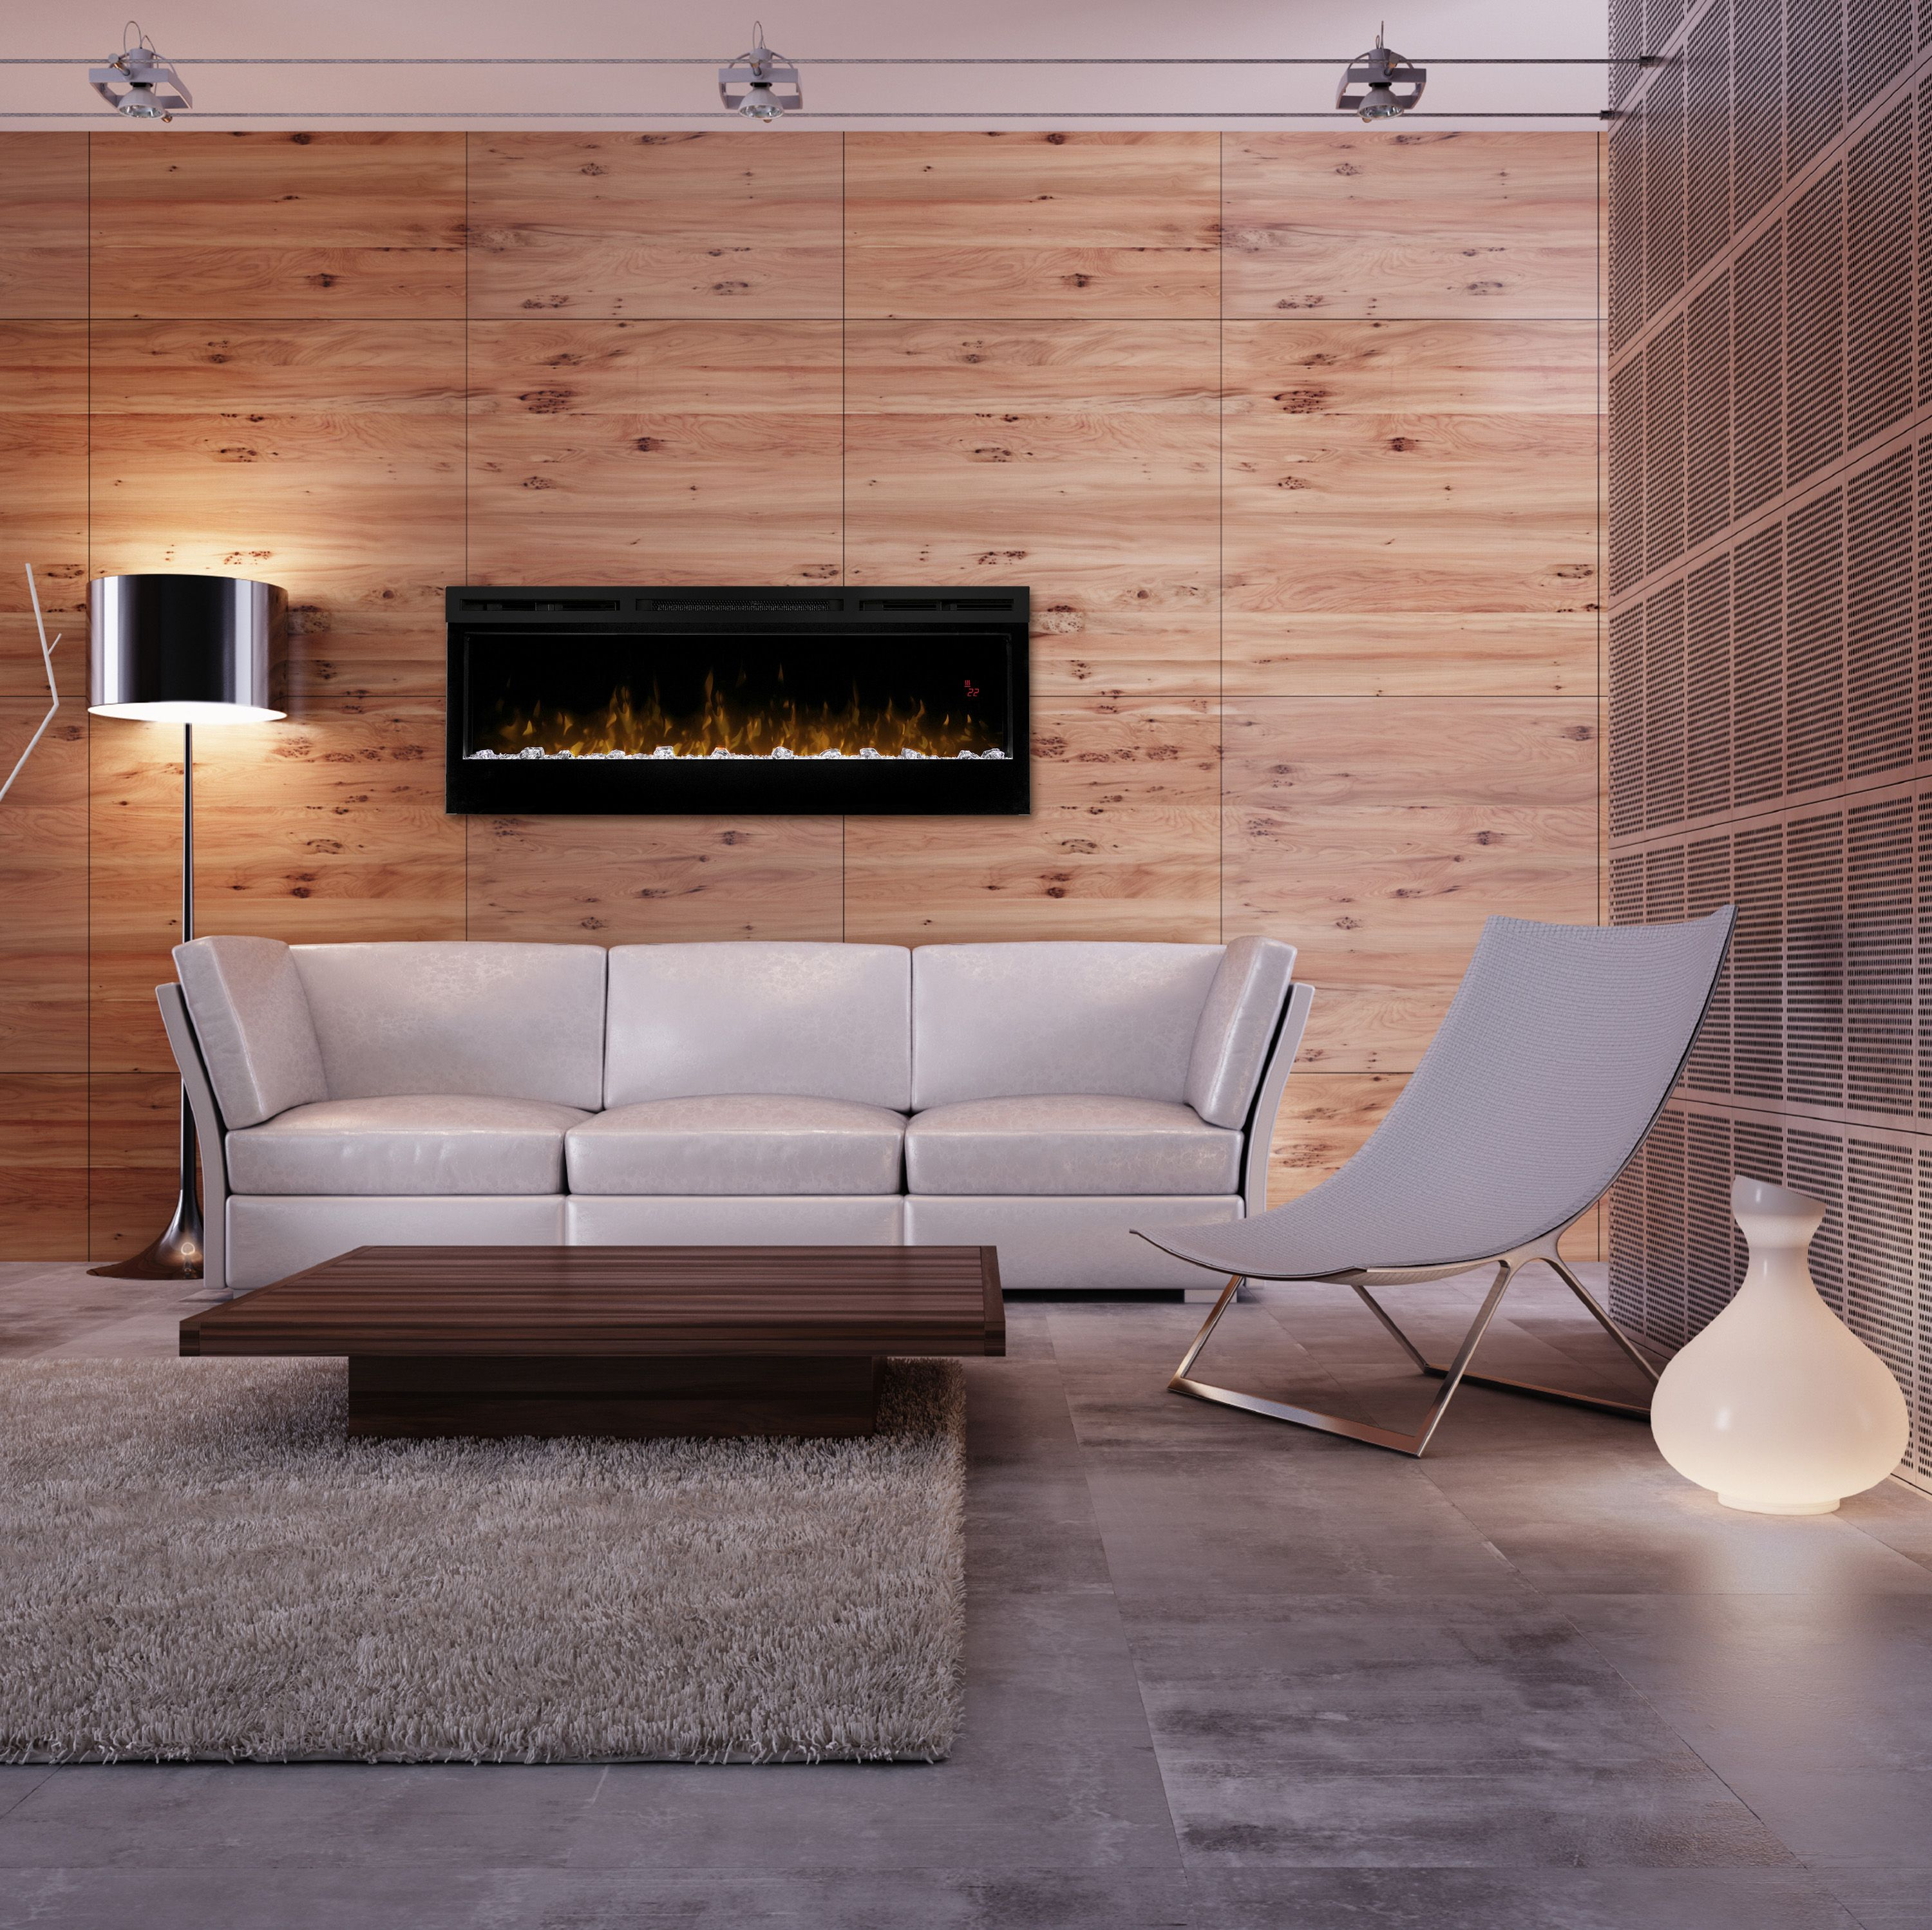 Pleasant Dimplex 50 Prism Series Linear Electric Fireplace In 2019 Interior Design Ideas Clesiryabchikinfo